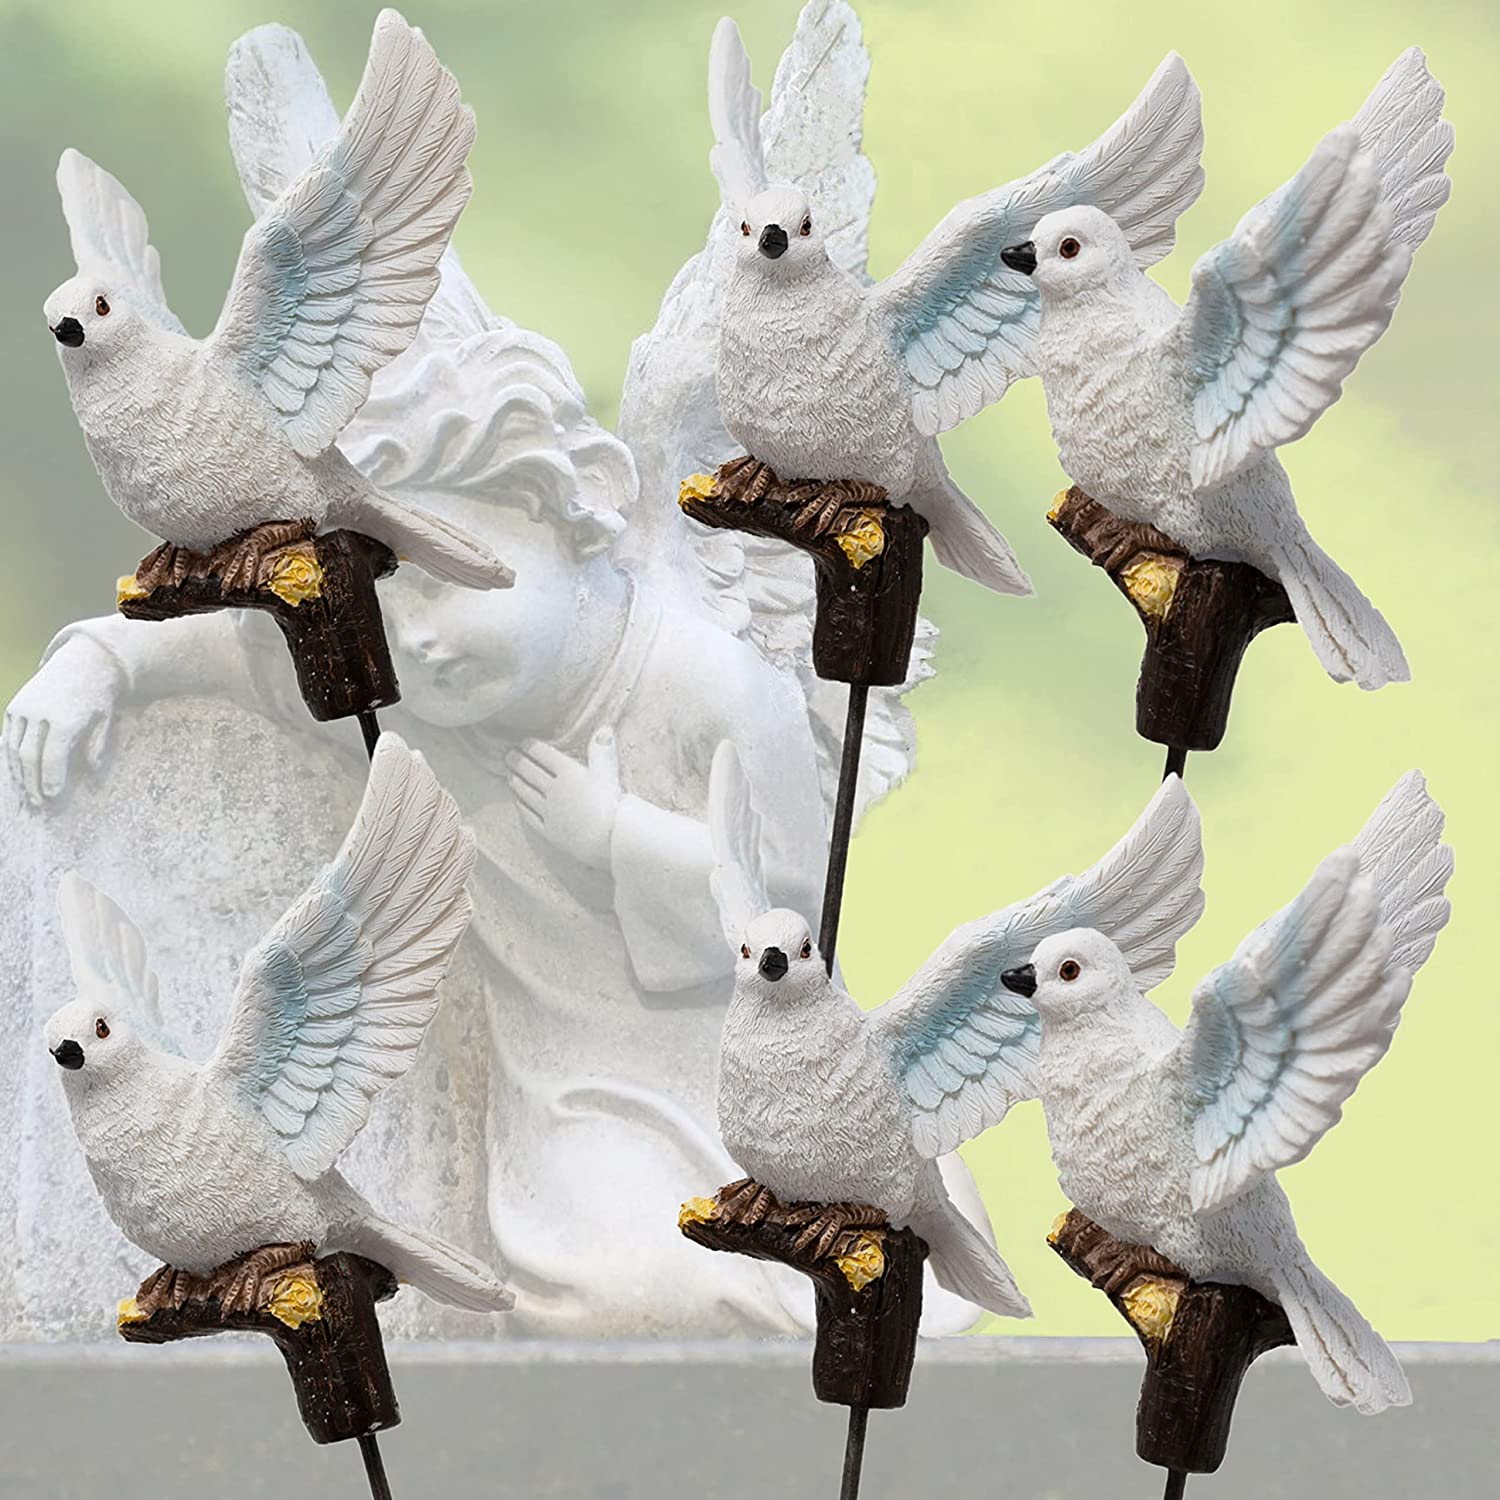 BANBERRY DESIGNS White Dove Garden Decorations - Set of 6 Doves on Sticks Memorial Stakes Yard Ornaments - Peace and Hope Bird Figurines